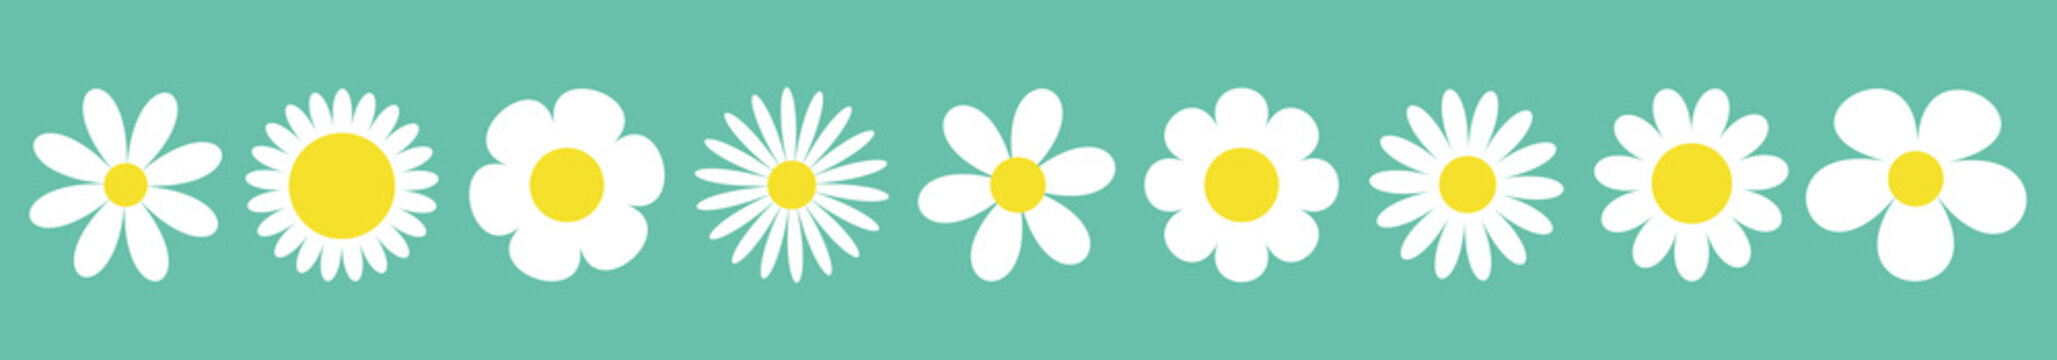 Camomile set line. White daisy chamomile icon. Cute round flower plant collection. Love card symbol. Growing concept. Isolated. Green background. Flat design.